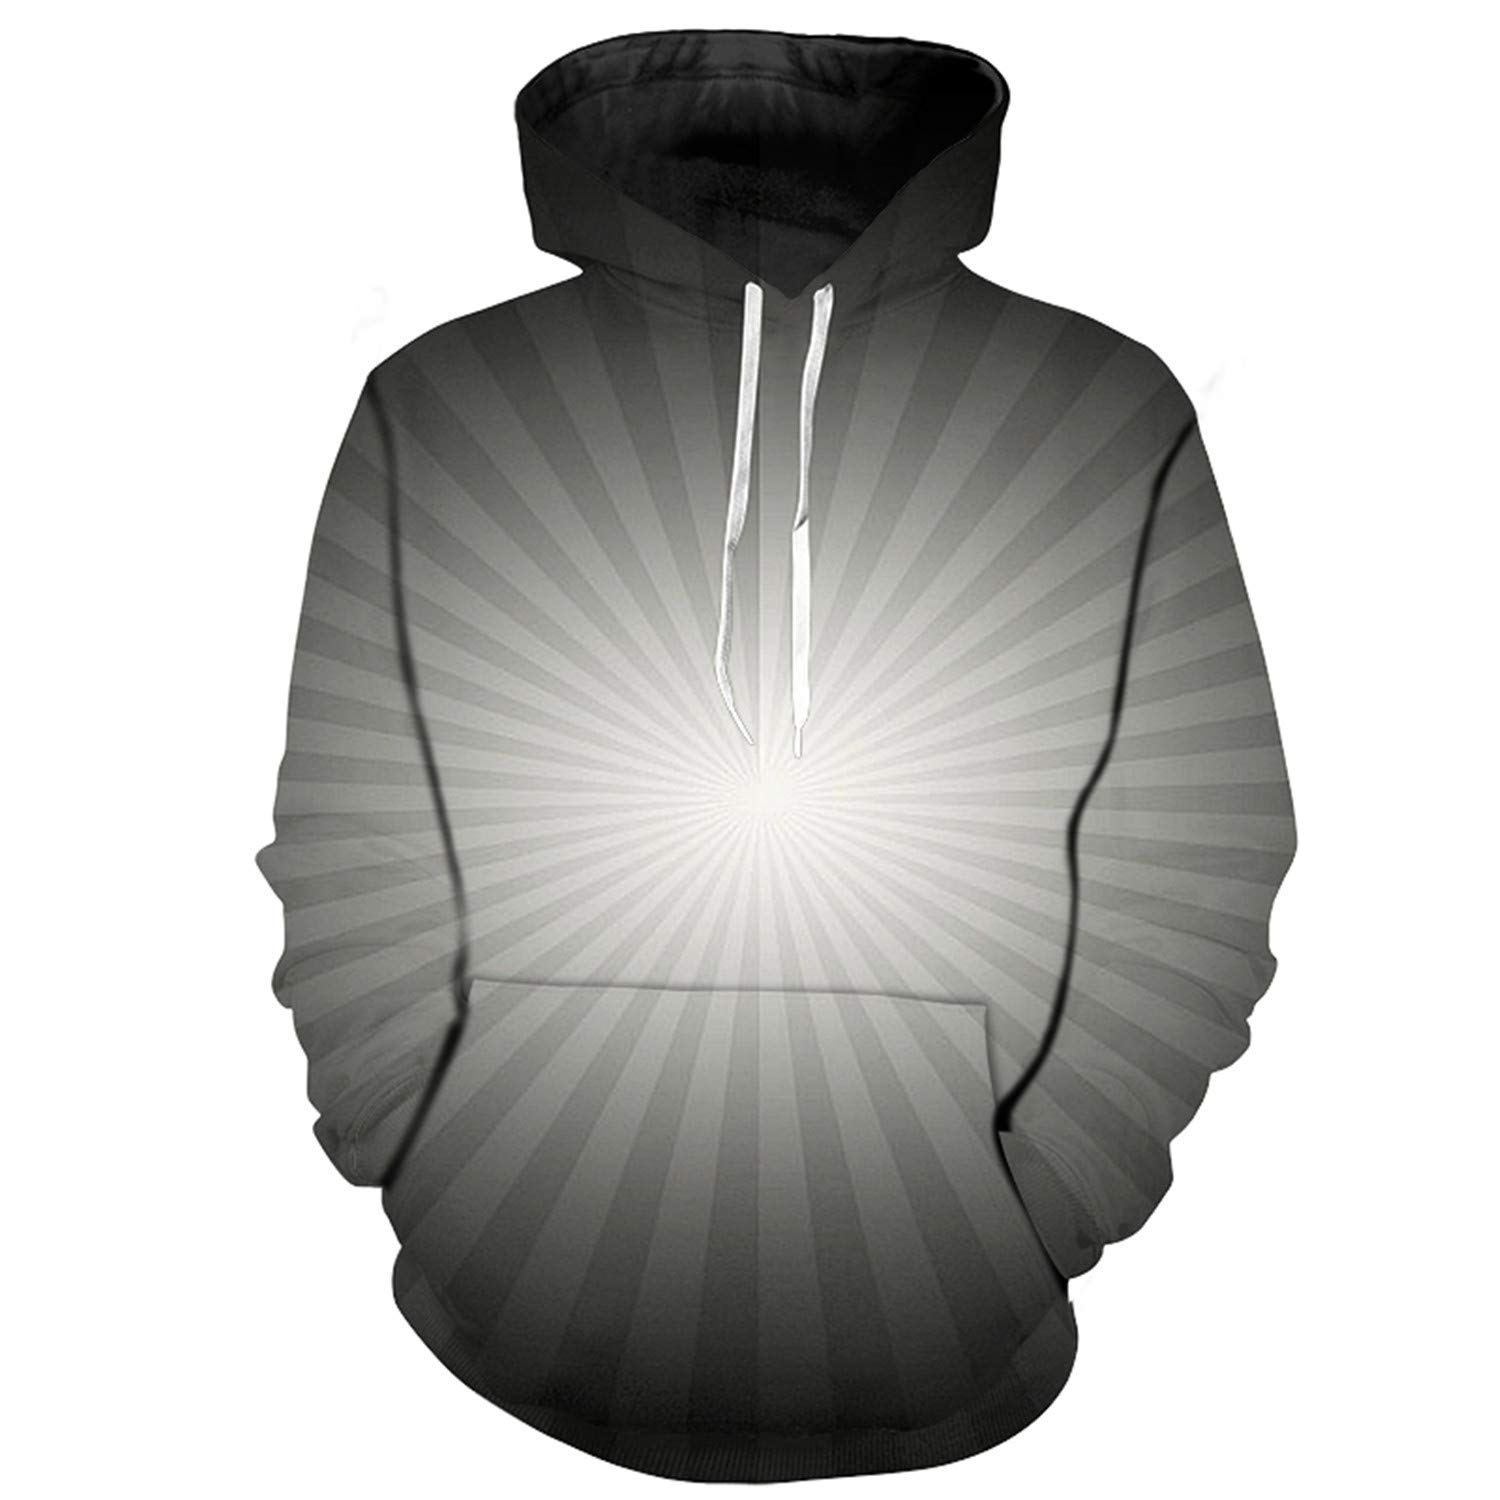 nayingying 3D Hoodies Hombres Sudaderas Con Capucha Galaxia Nebulosa 3D Streetwear